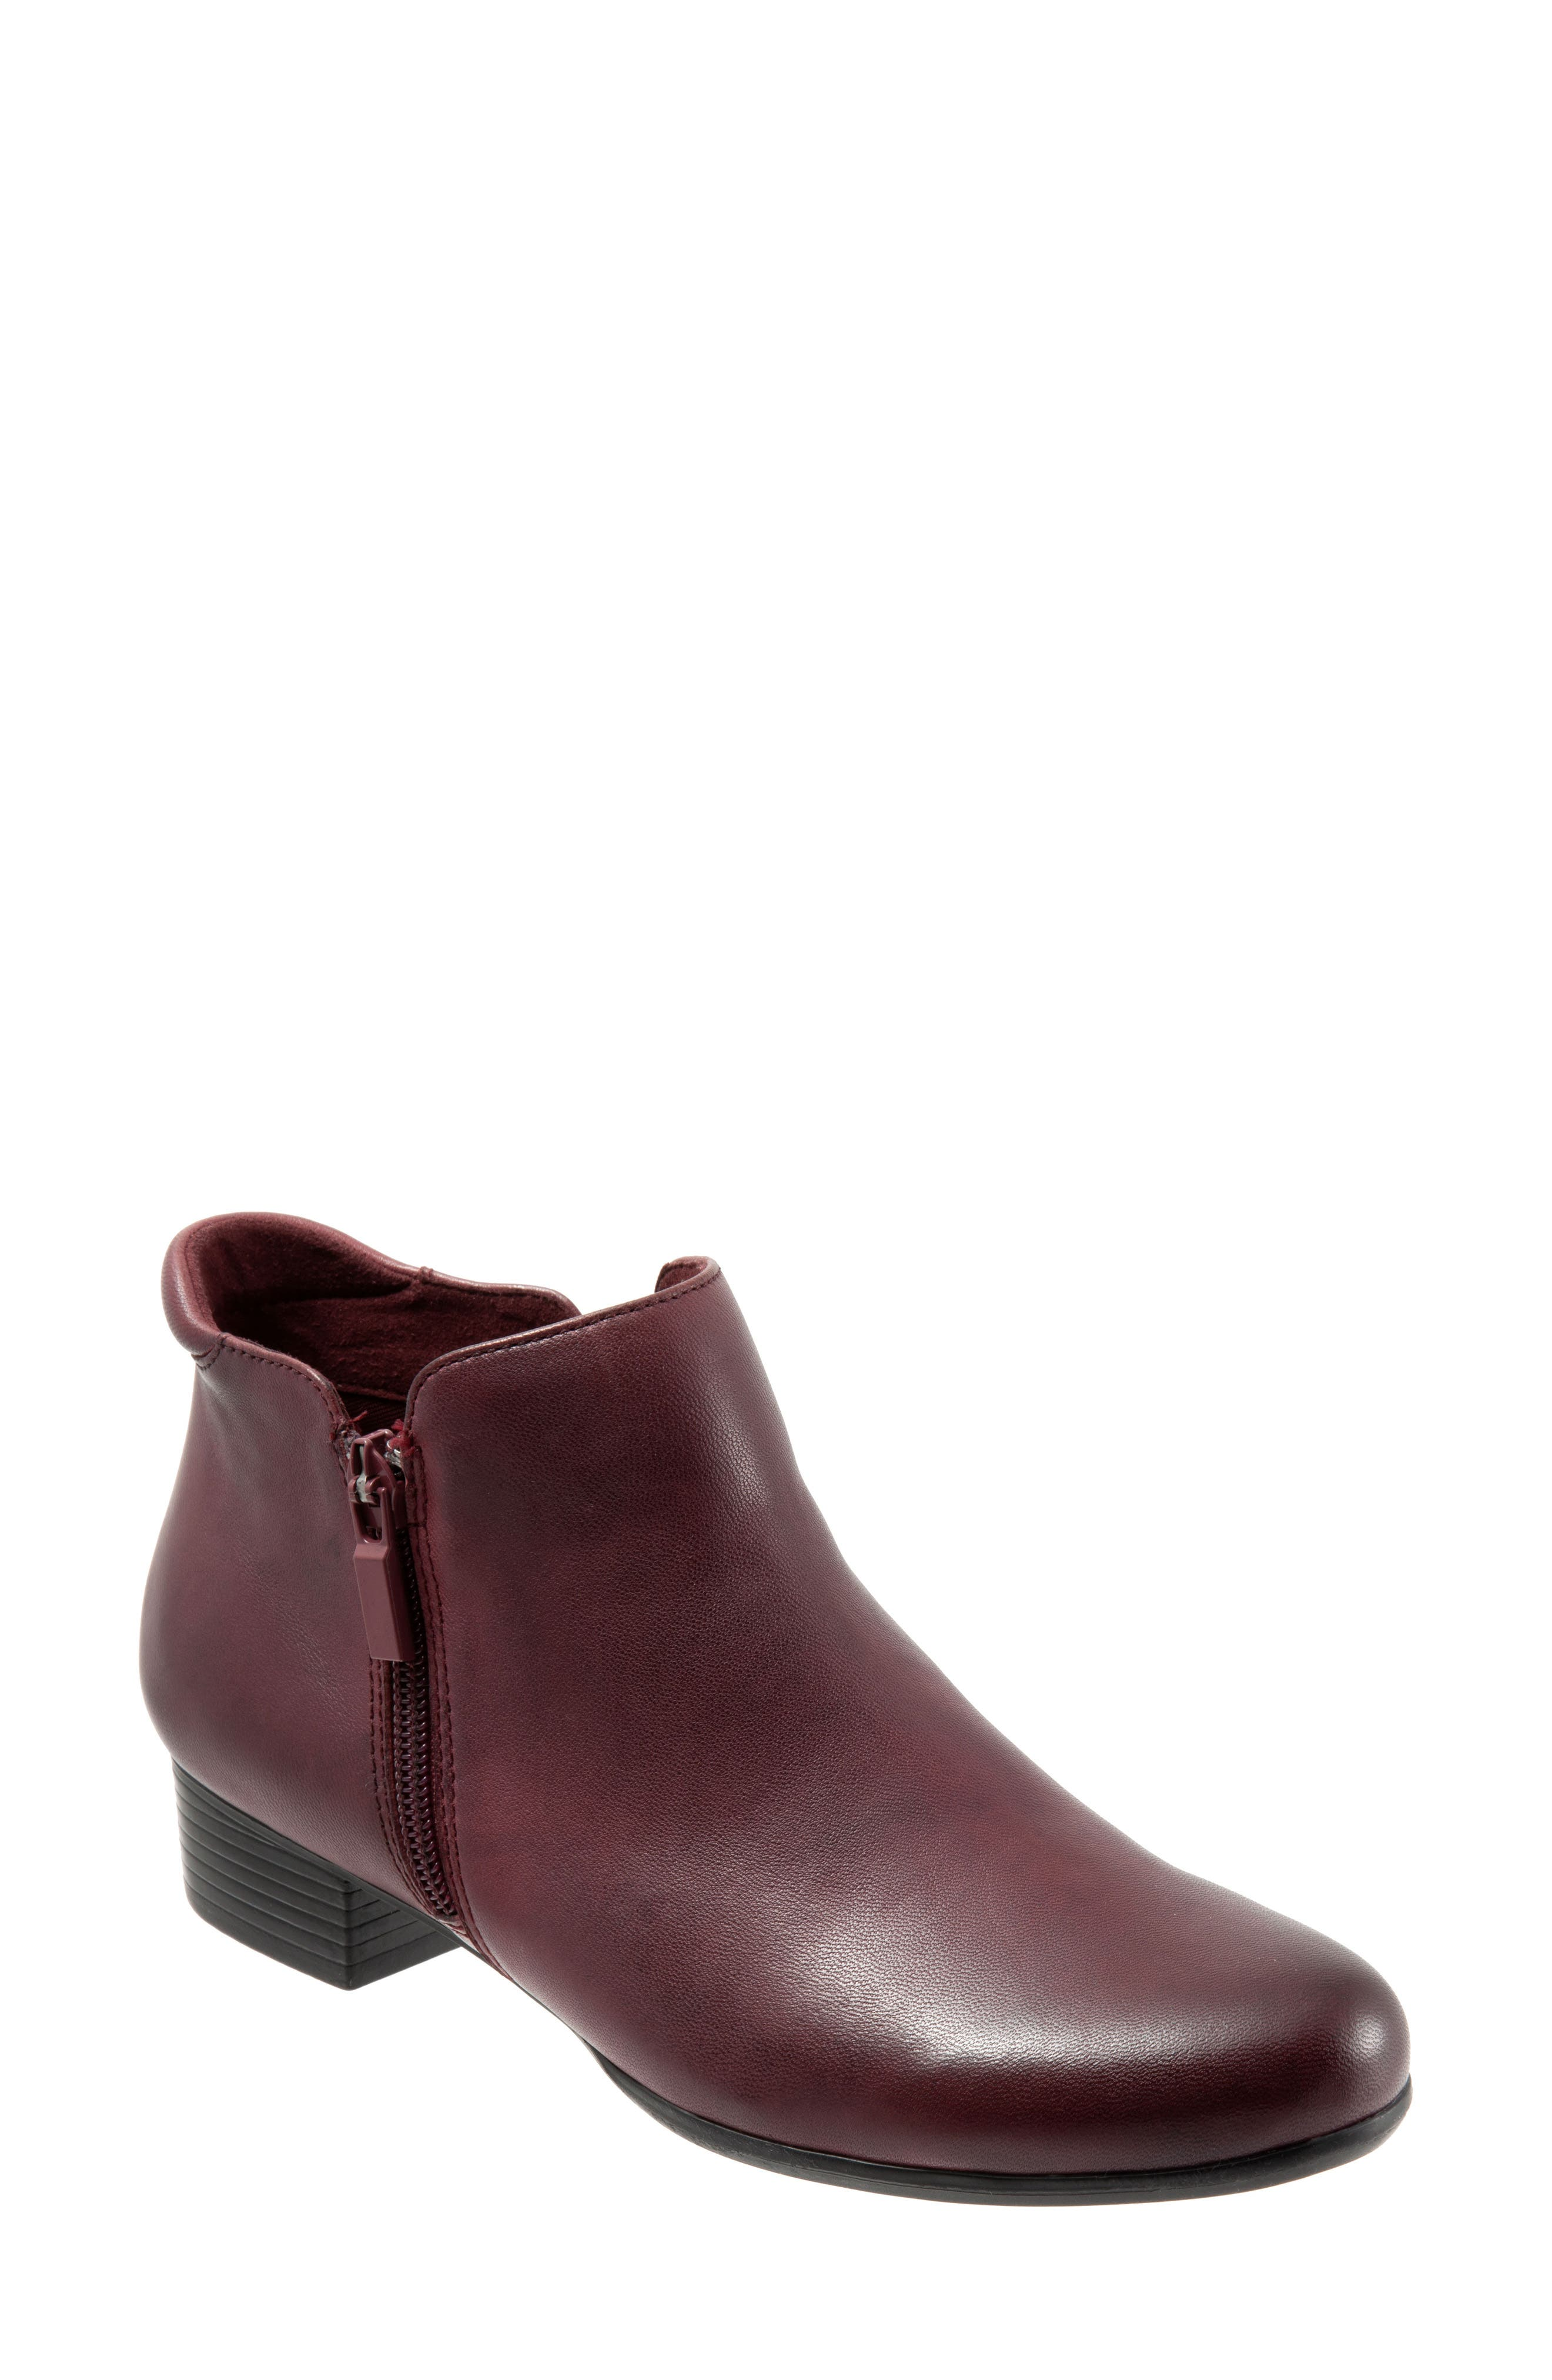 TROTTERS, Major Bootie, Main thumbnail 1, color, DARK RED LEATHER